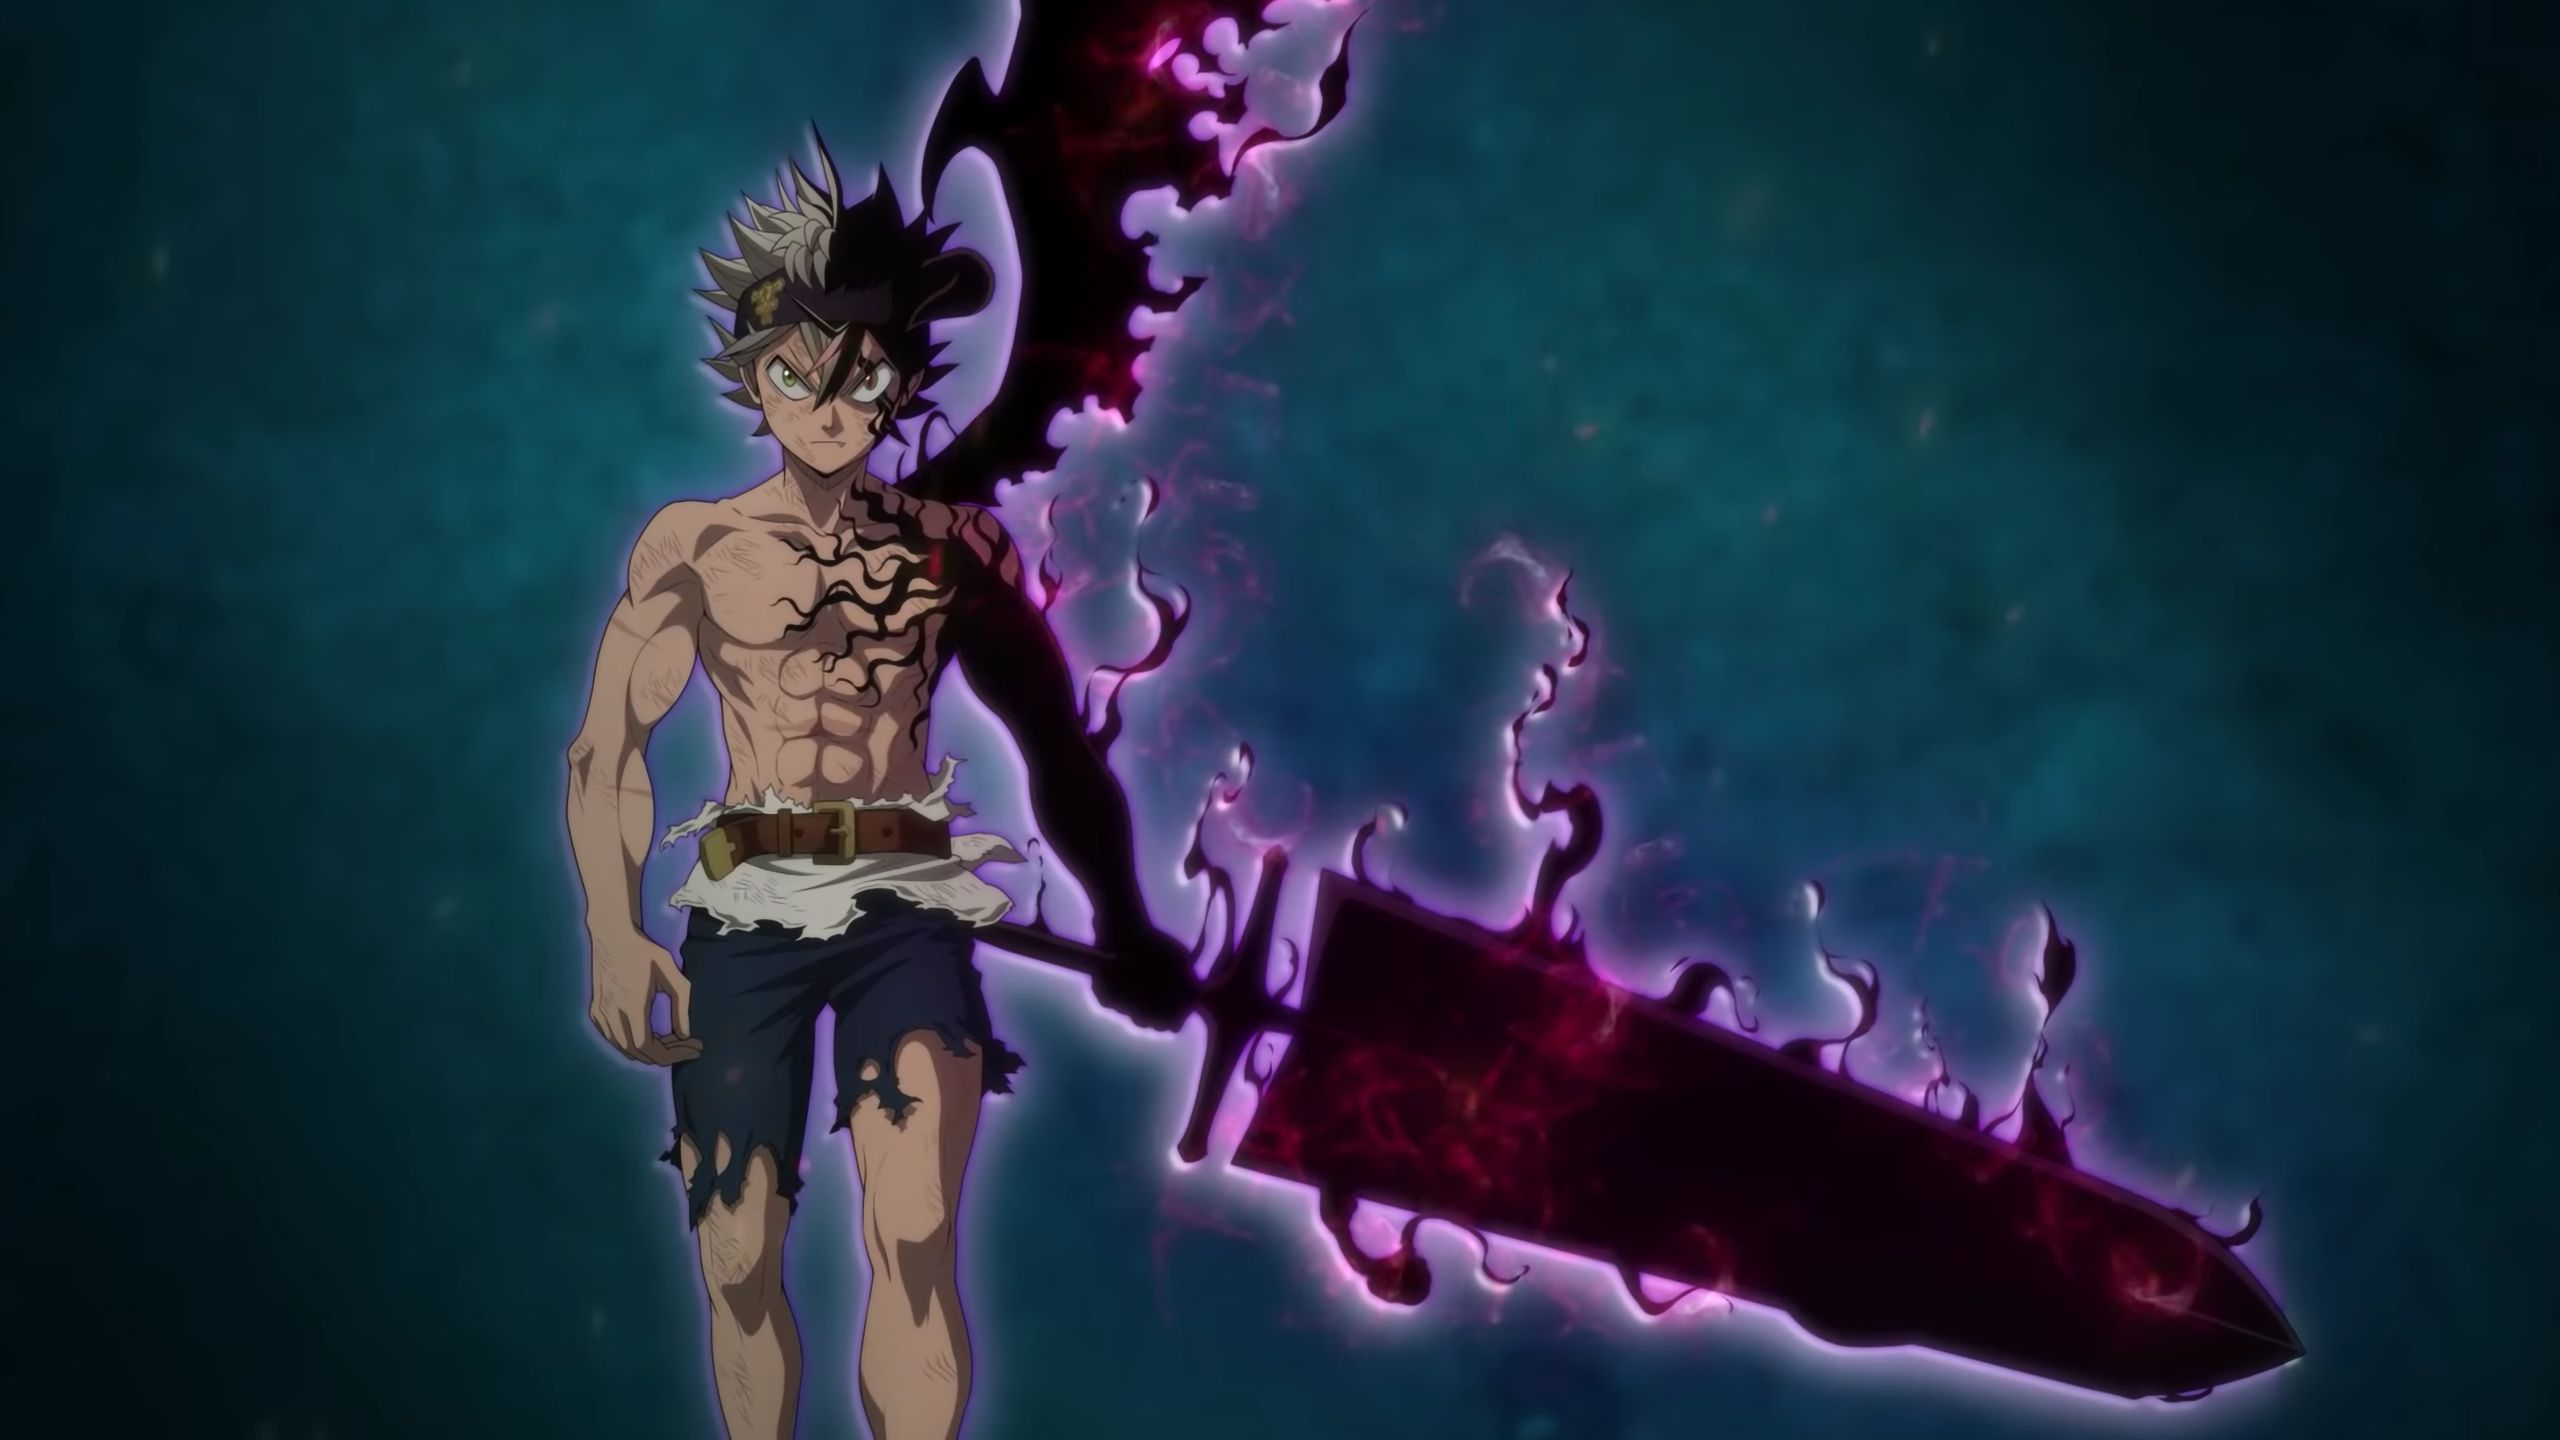 Black Clover Wallpaper For Mobile Phone Tablet Desktop Computer And Other Devices Hd And 4k Wallpapers Iphone 7 Wallpapers Wallpaper Anime Wallpaper